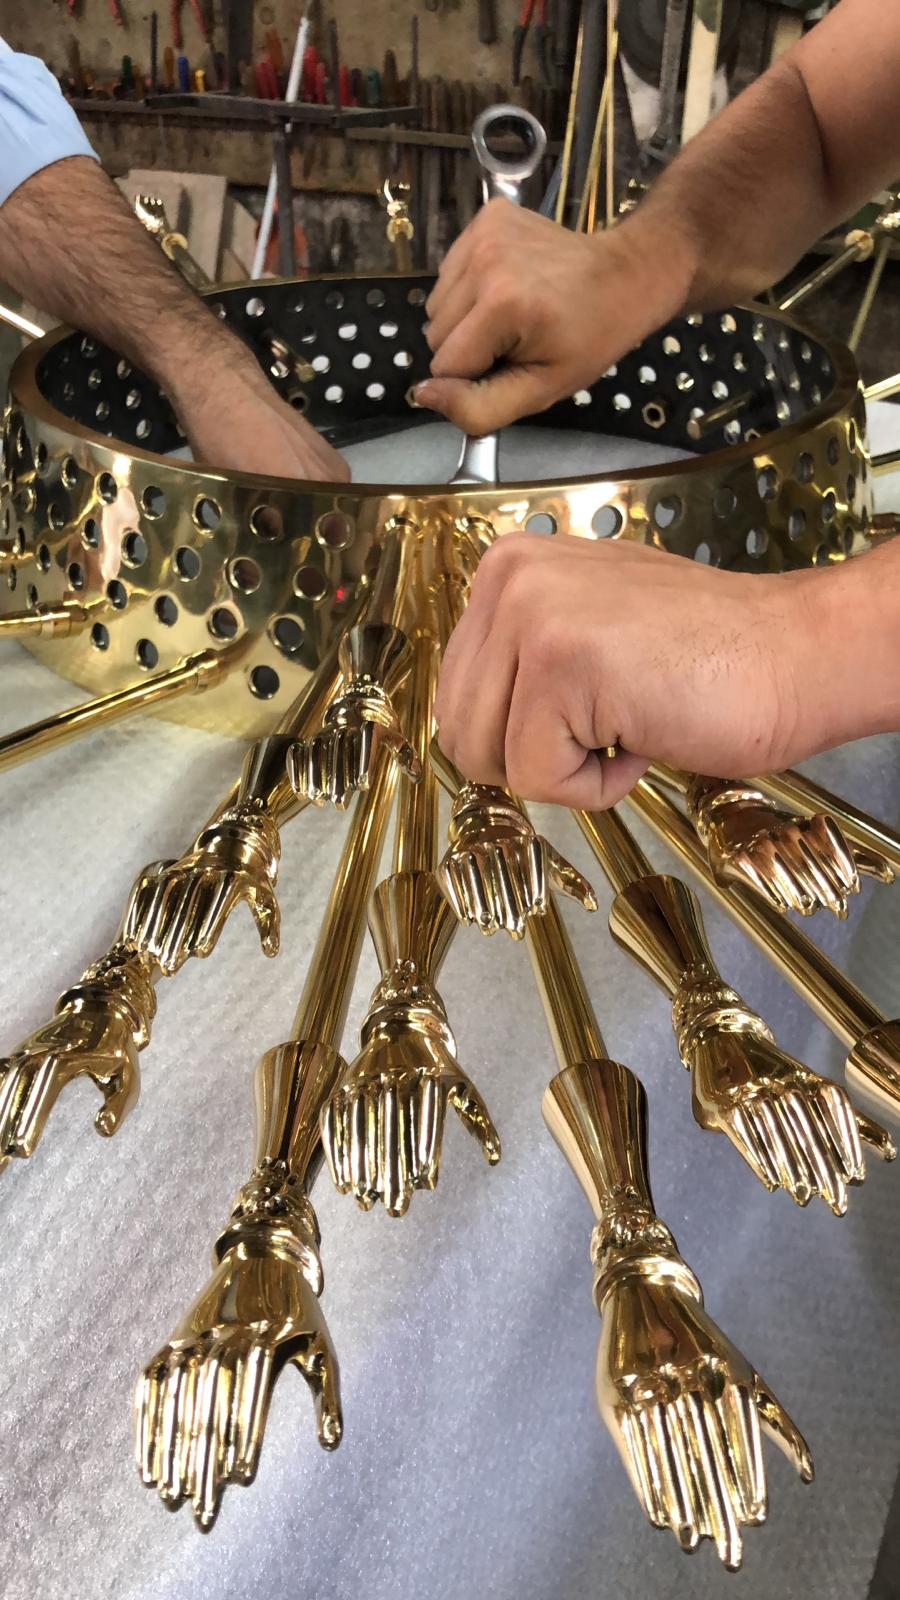 KOKET's master craftsman assembling the new Goddess Mirror. A stunning mirror featuring 200 handcrafted brass hands set to debut at salone del mobile milano 2019